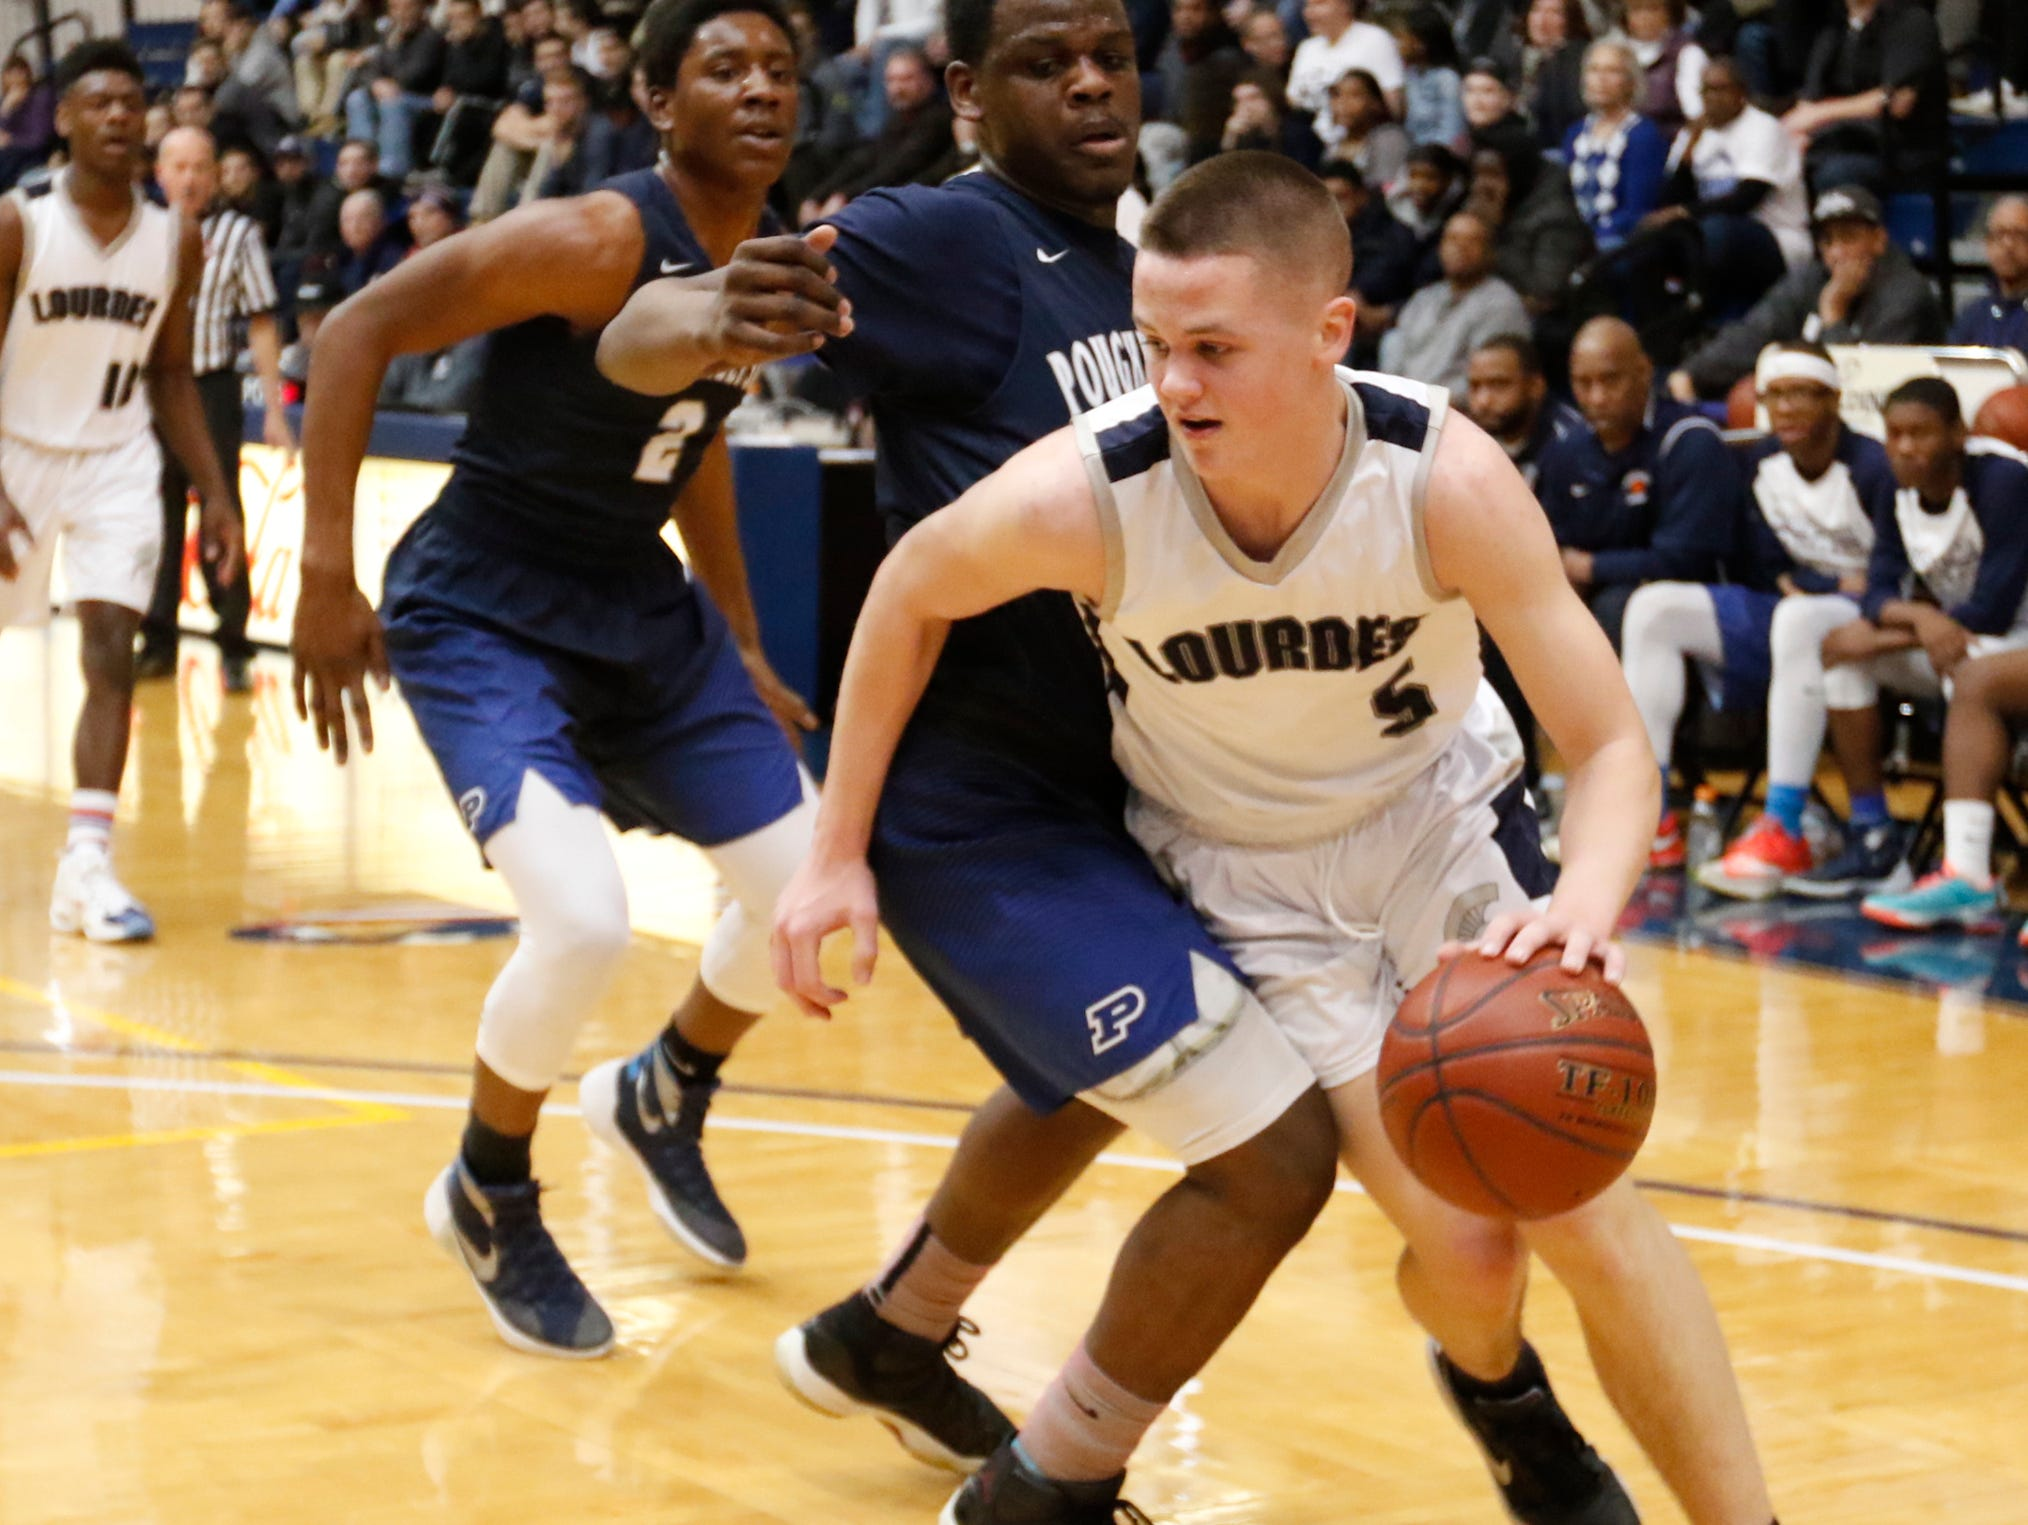 Our Lady of Lourdes High School's Aidan Hildebrand drives past a Poughkeepsie defender during Saturday's victory in the Class A regional finals at Pace University in Pleasantville.